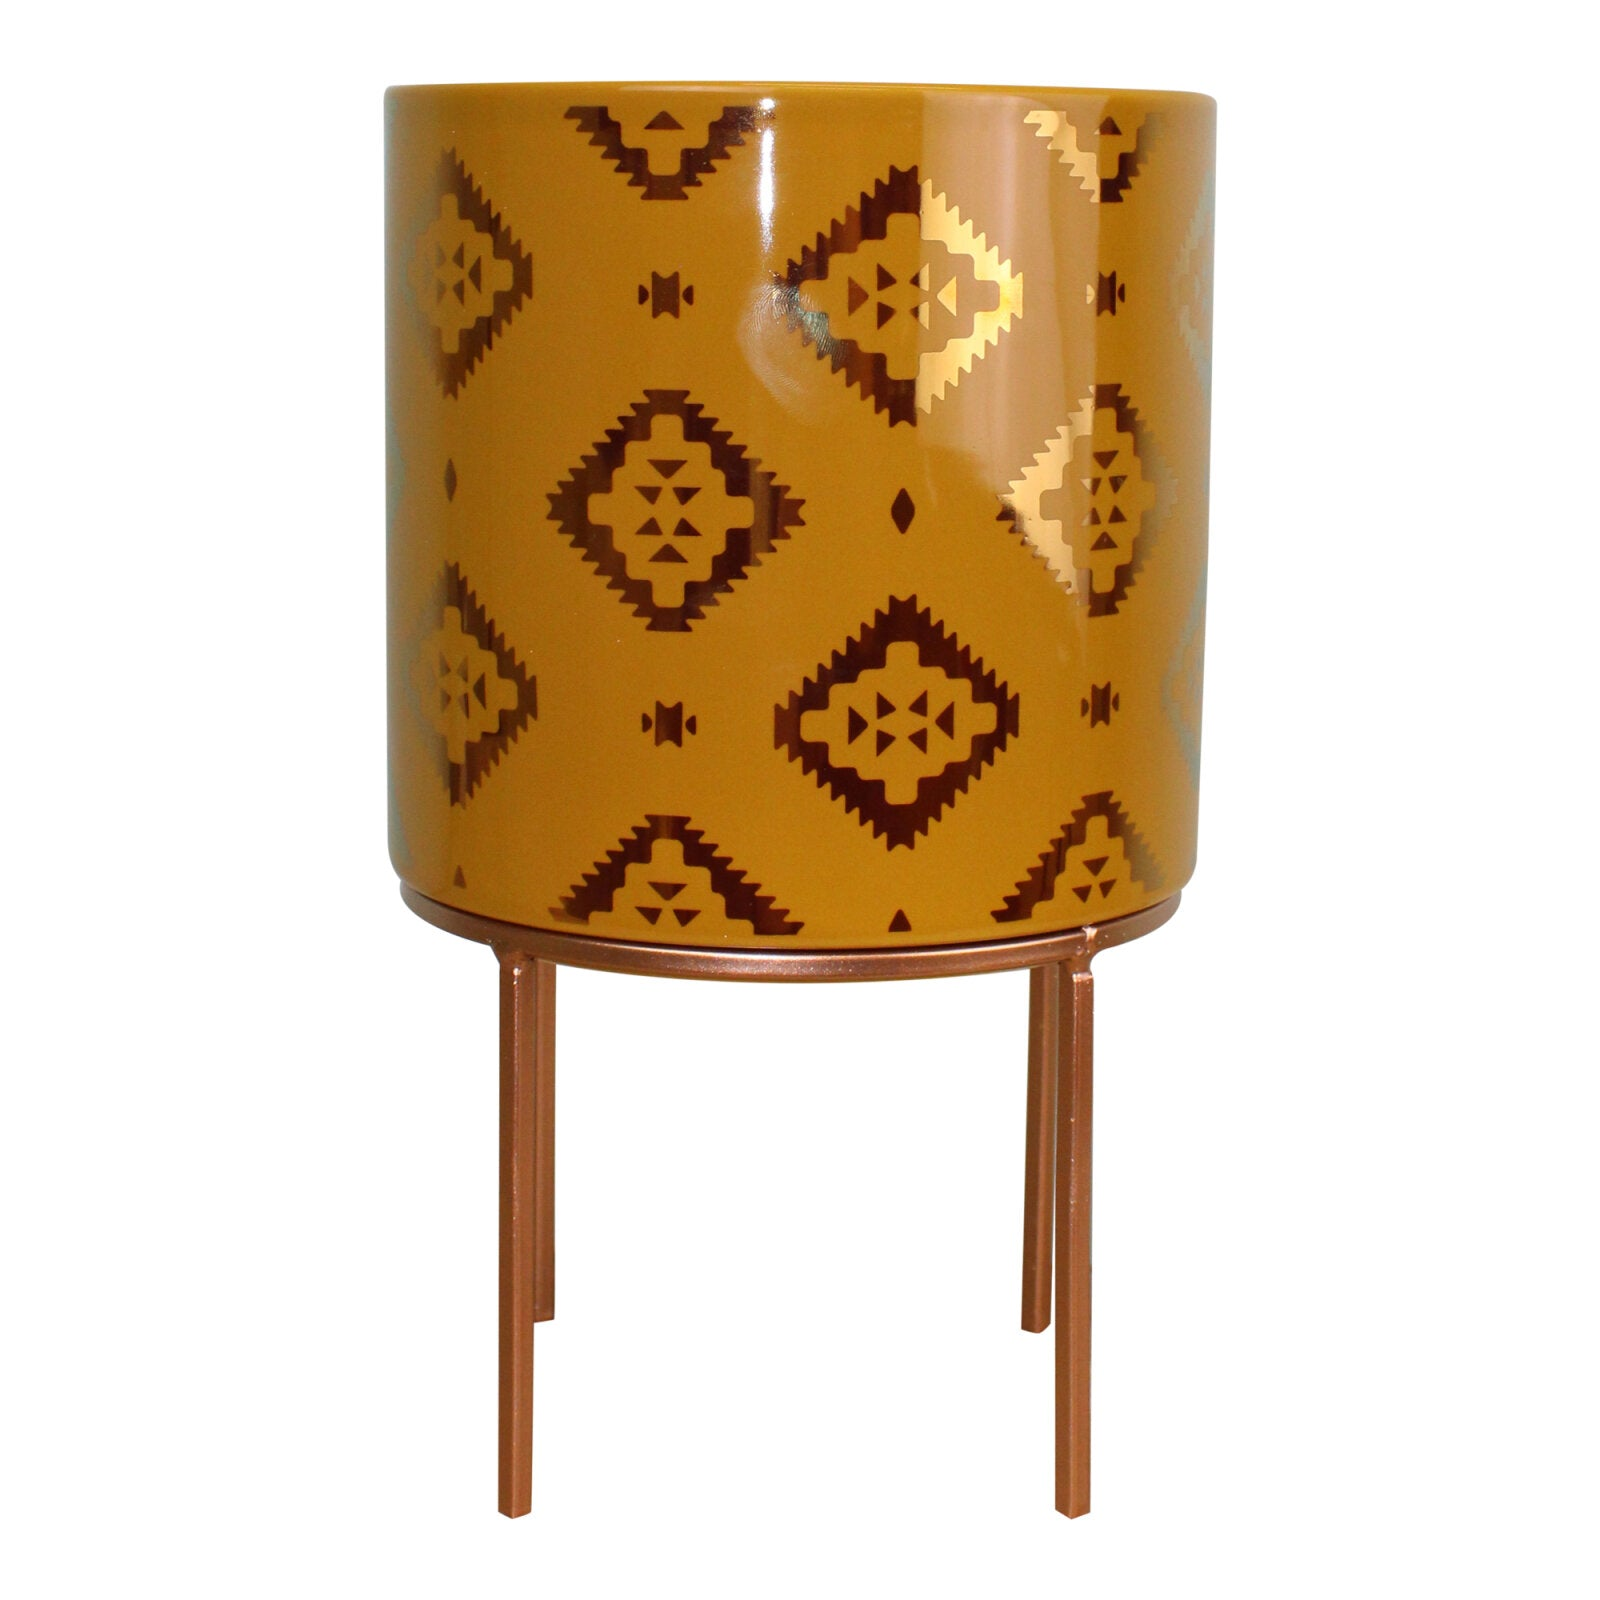 Kasbah Design Ceramic Planter, Yellow, Lawn & Garden by Low Cost Gifts